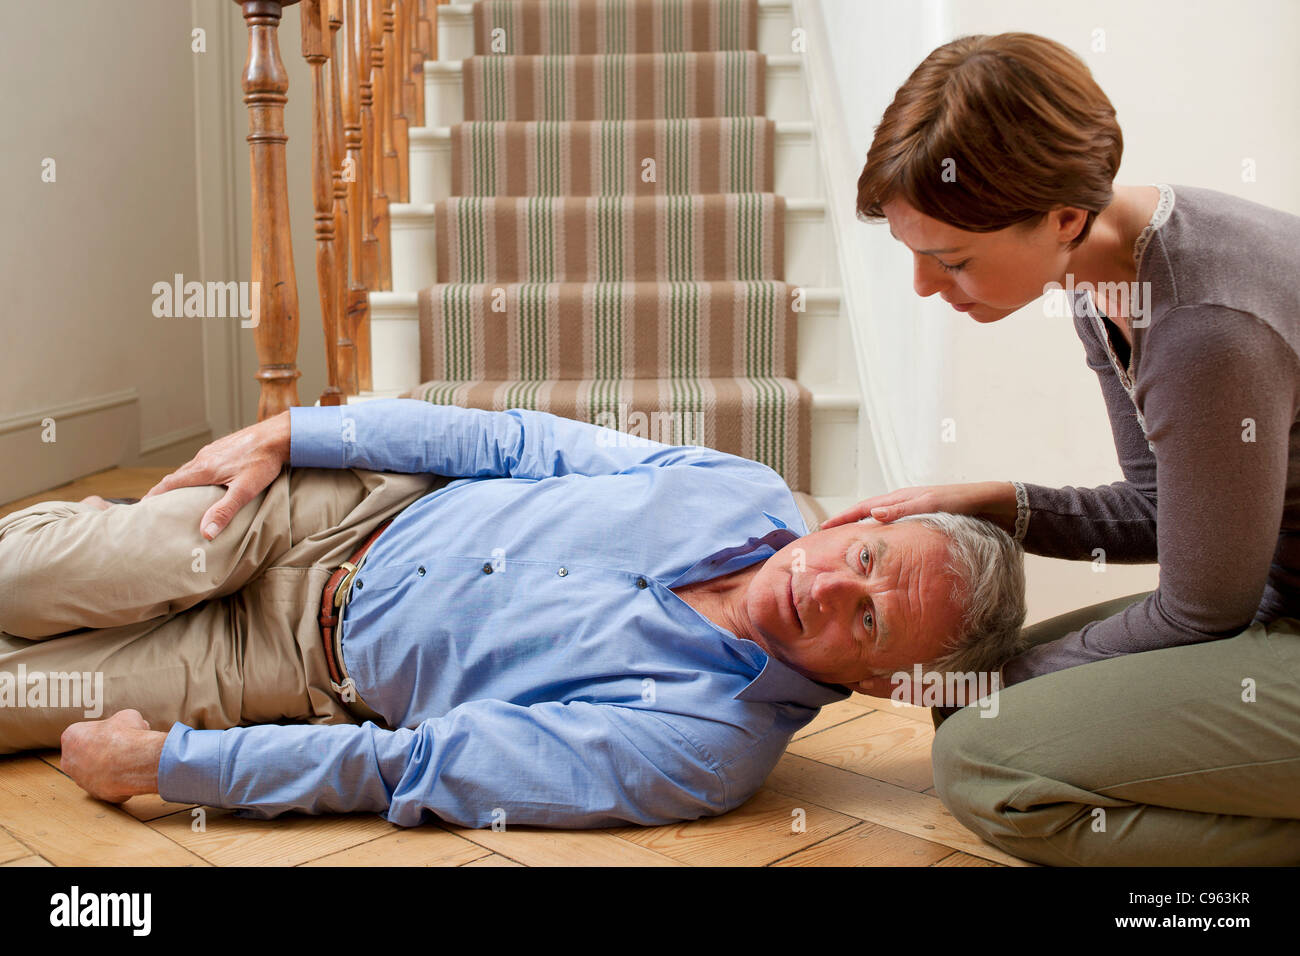 Senior man injured in a fall being placed in the recovery position. - Stock Image